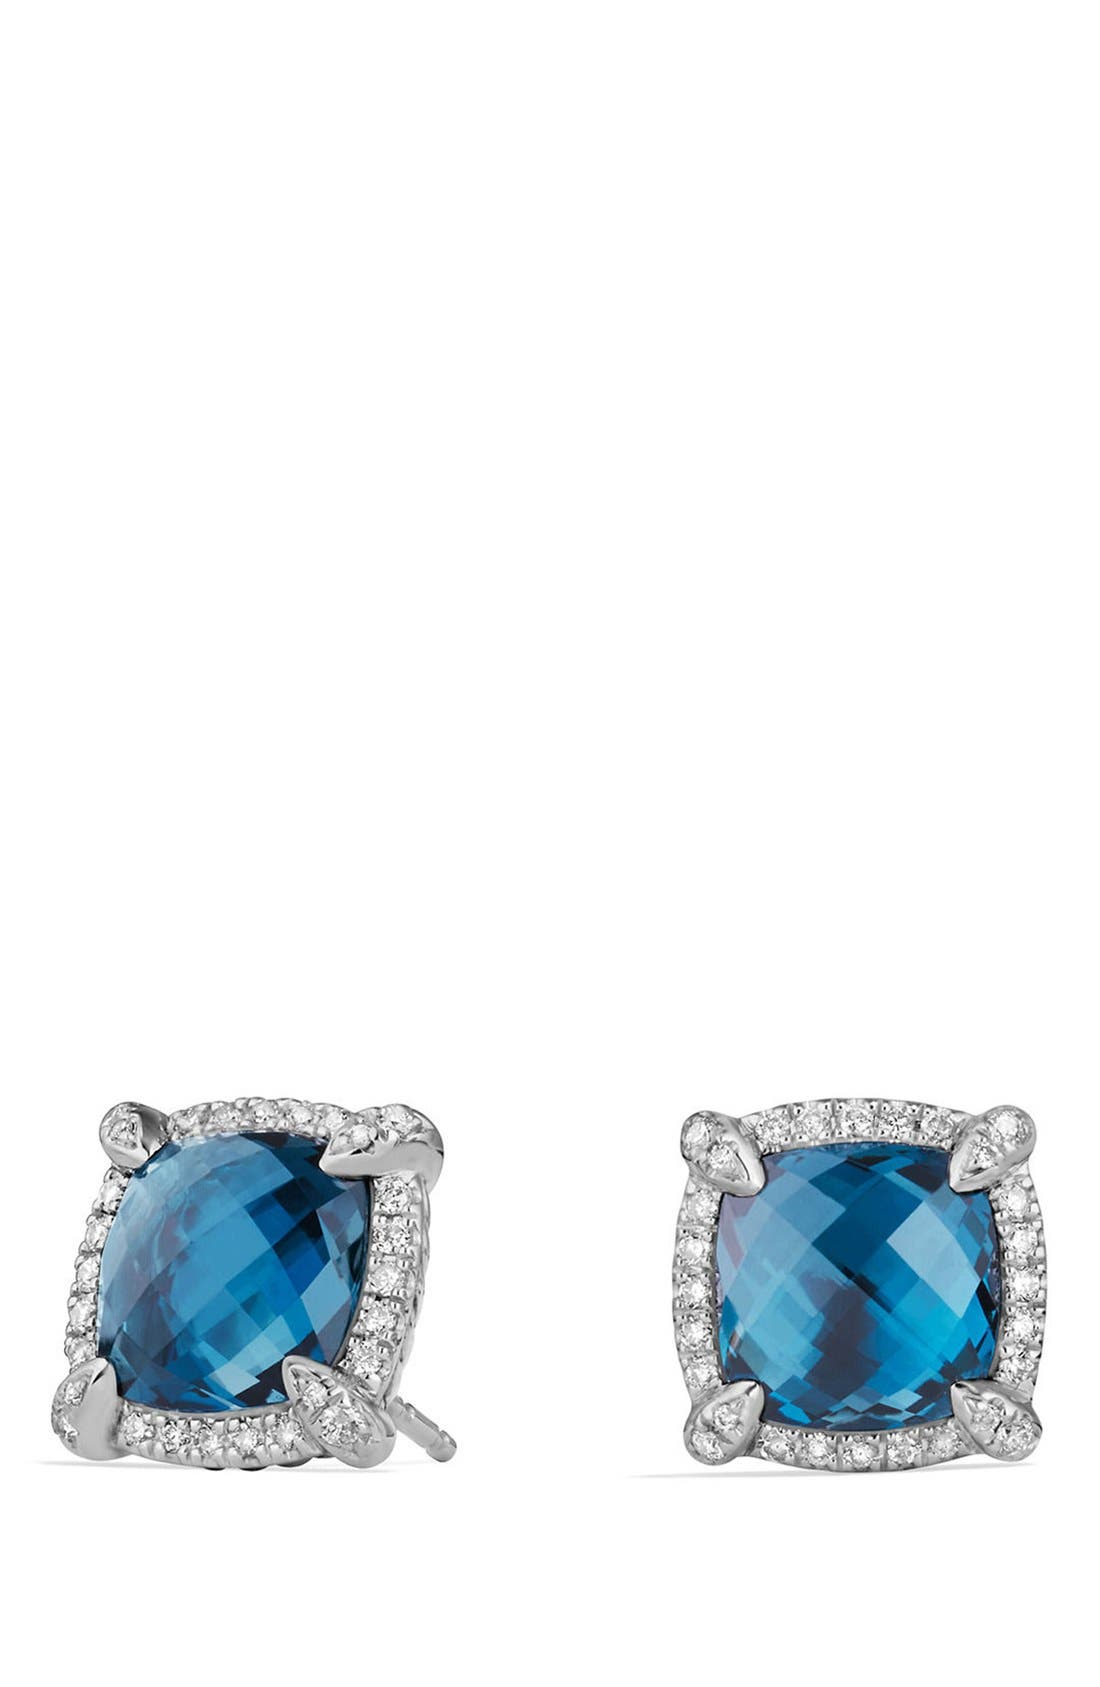 Main Image - David Yurman 'Châtelaine' Pavé Bezel Stud Earrings with Diamonds